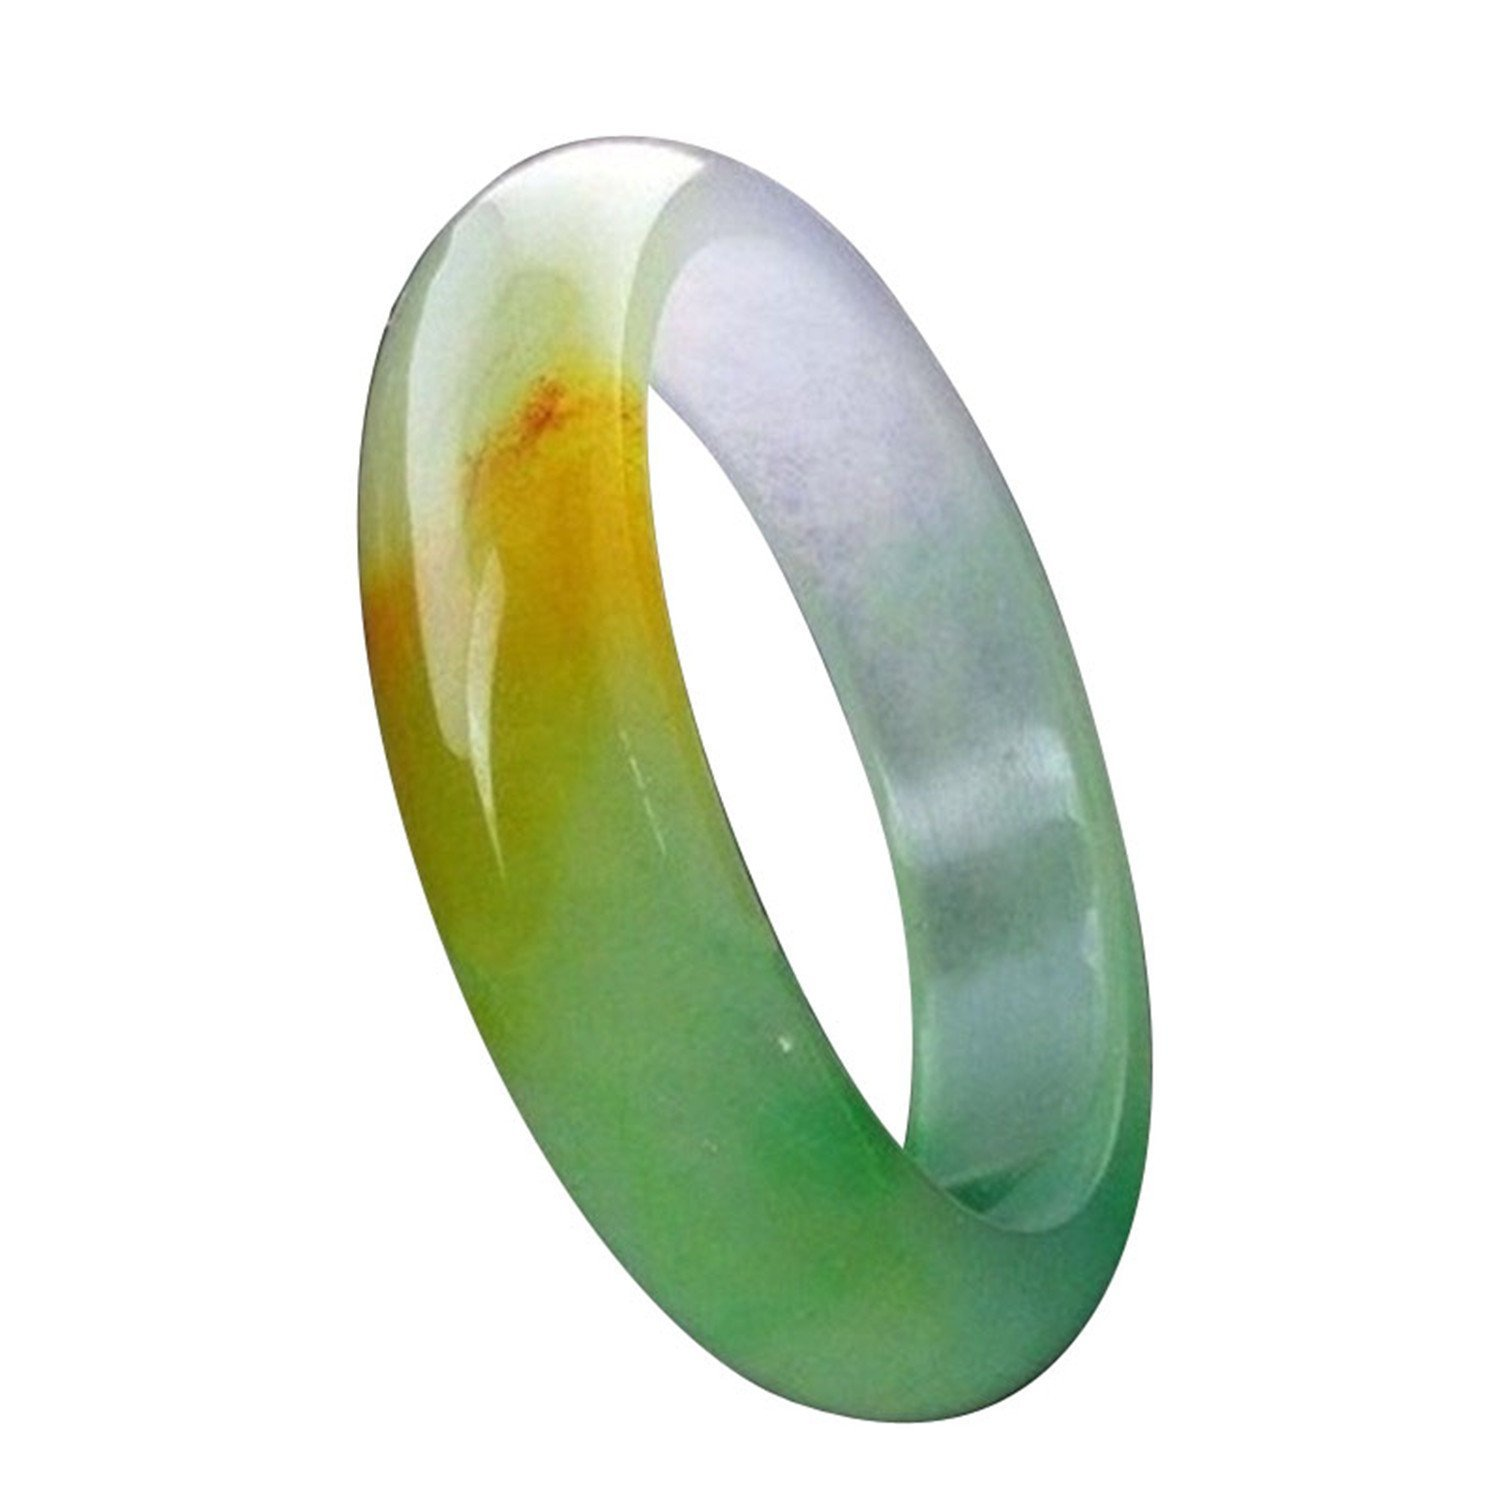 Natural Beautiful Emerald 3 Colors Green Nephrite Jade Bangle Bracelet Morther Gift Gemstone JewelryNatural Beautiful Emerald 3 Colors Green Nephrite Jade Bangle Bracelet Morther Gift Gemstone Jewelry